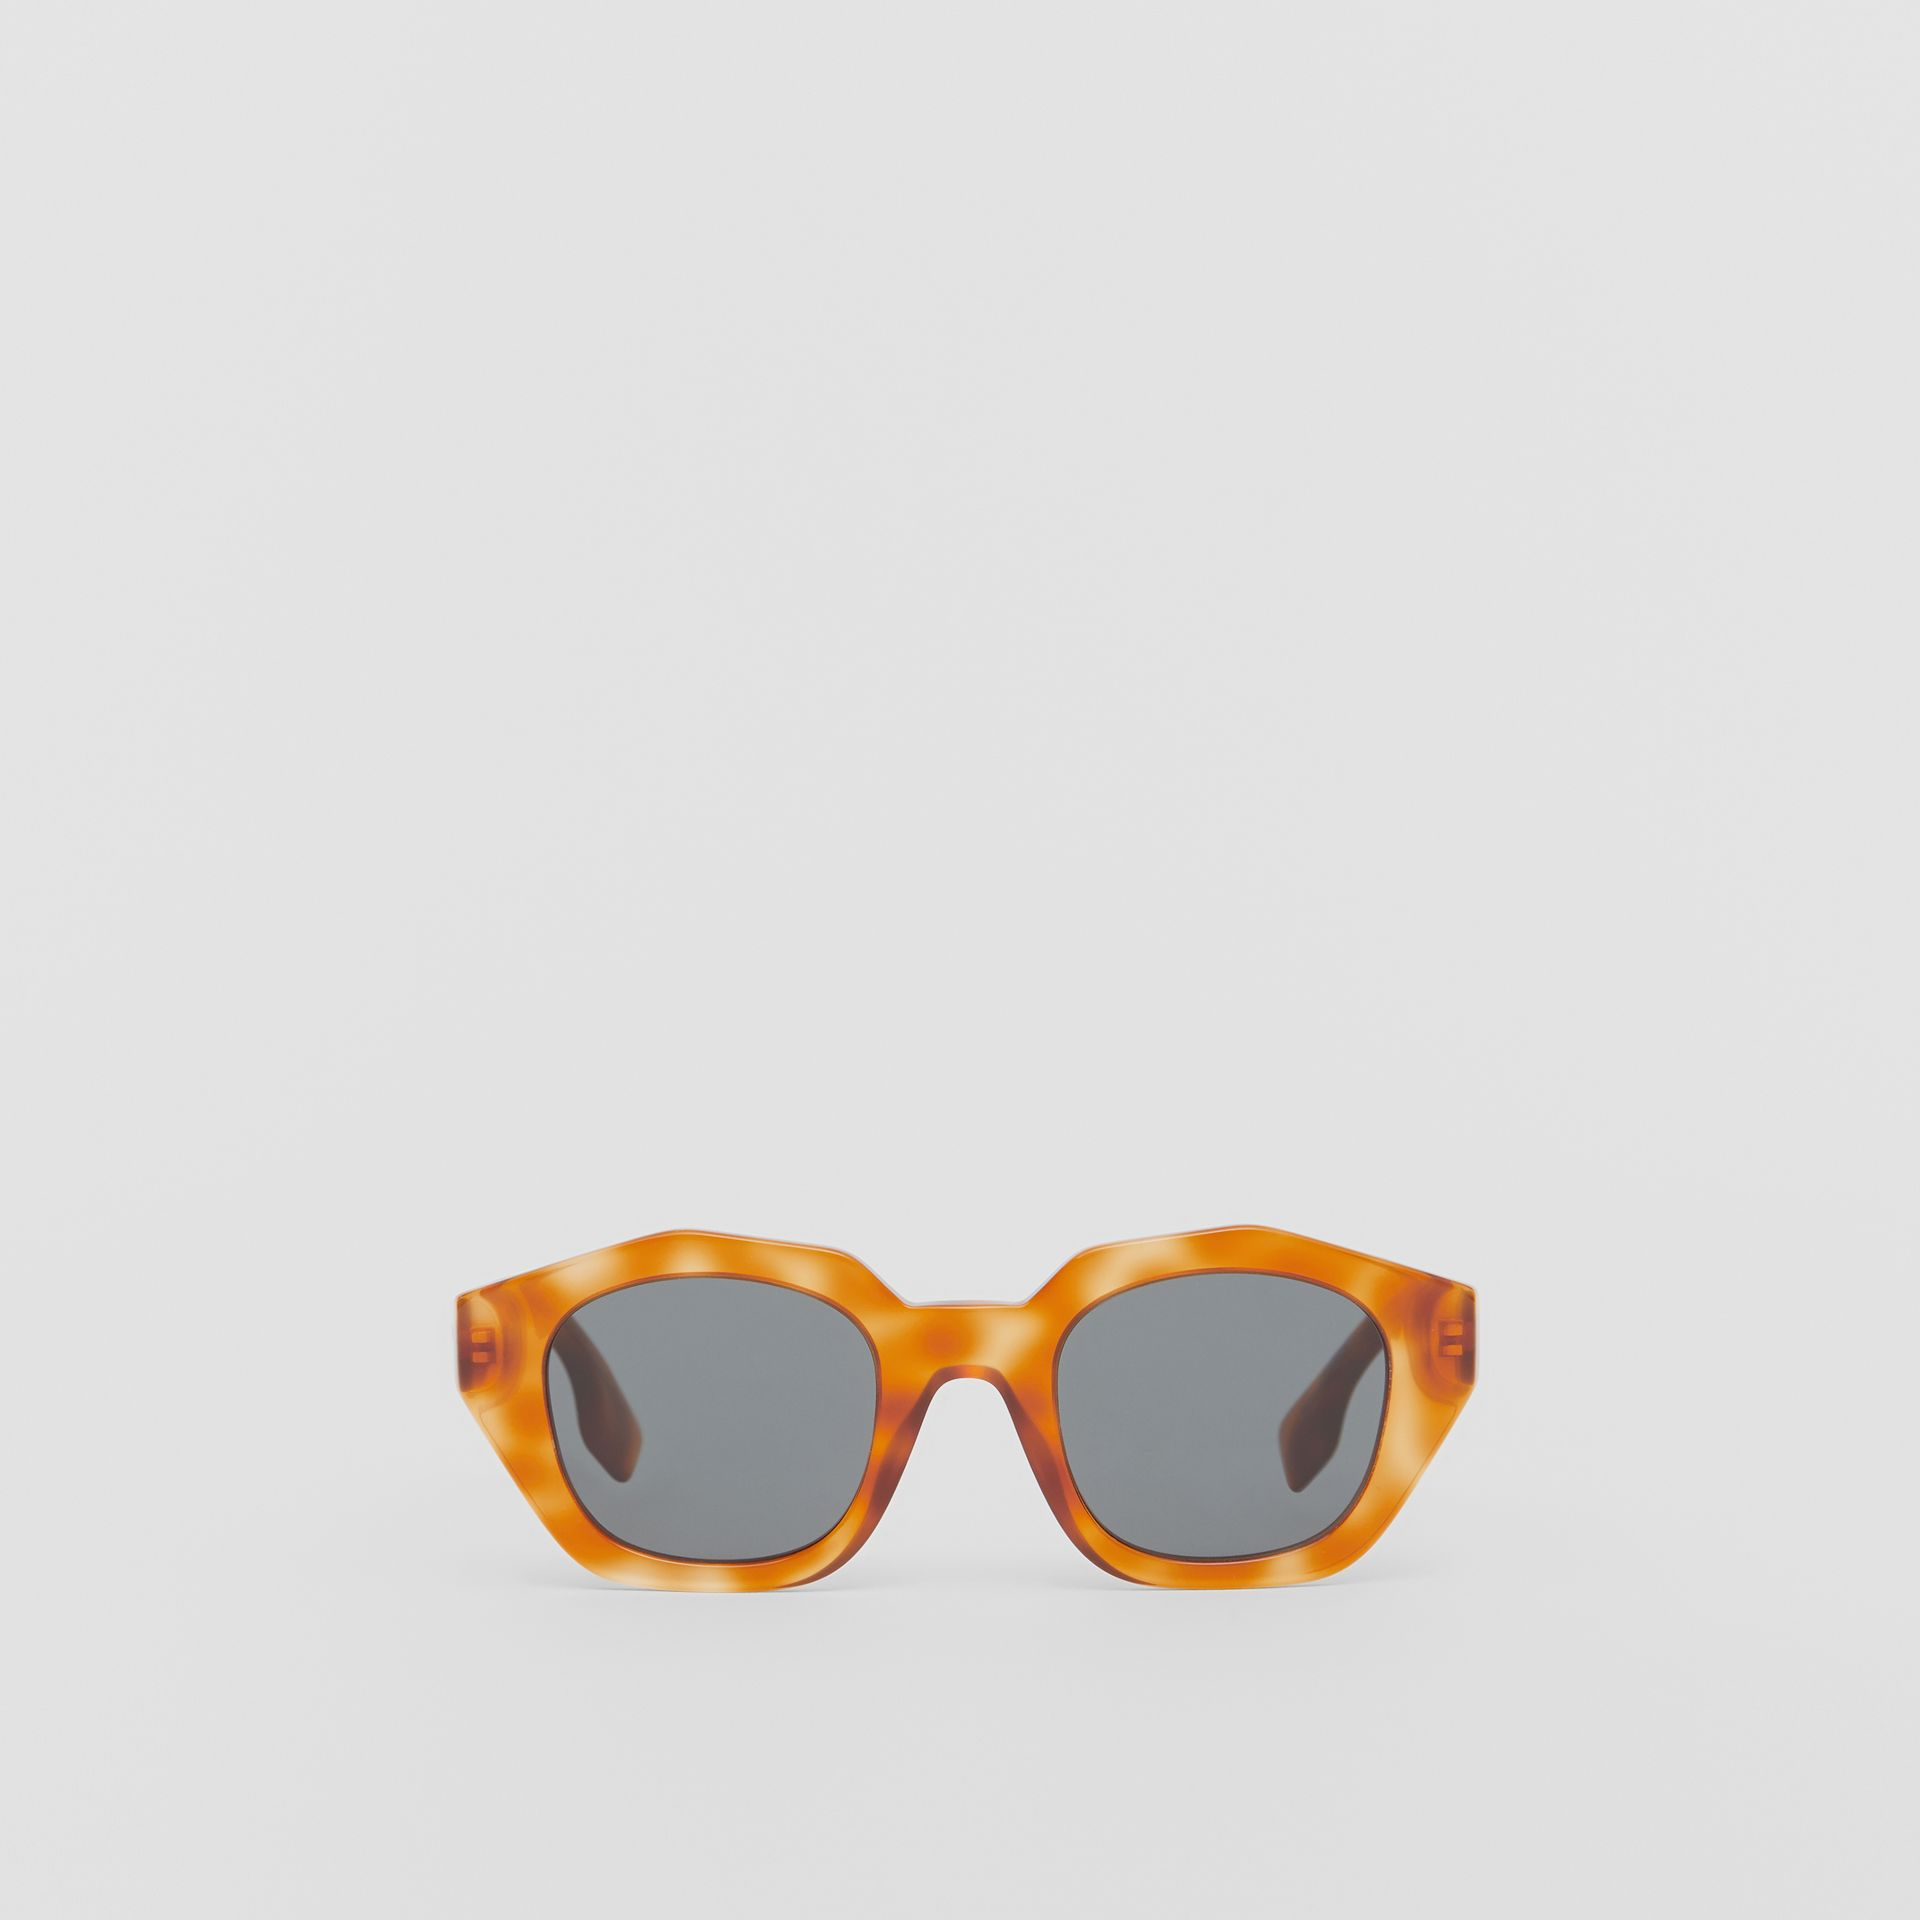 Geometric Frame Sunglasses in Tortoiseshell Amber - Women | Burberry United Kingdom - gallery image 0